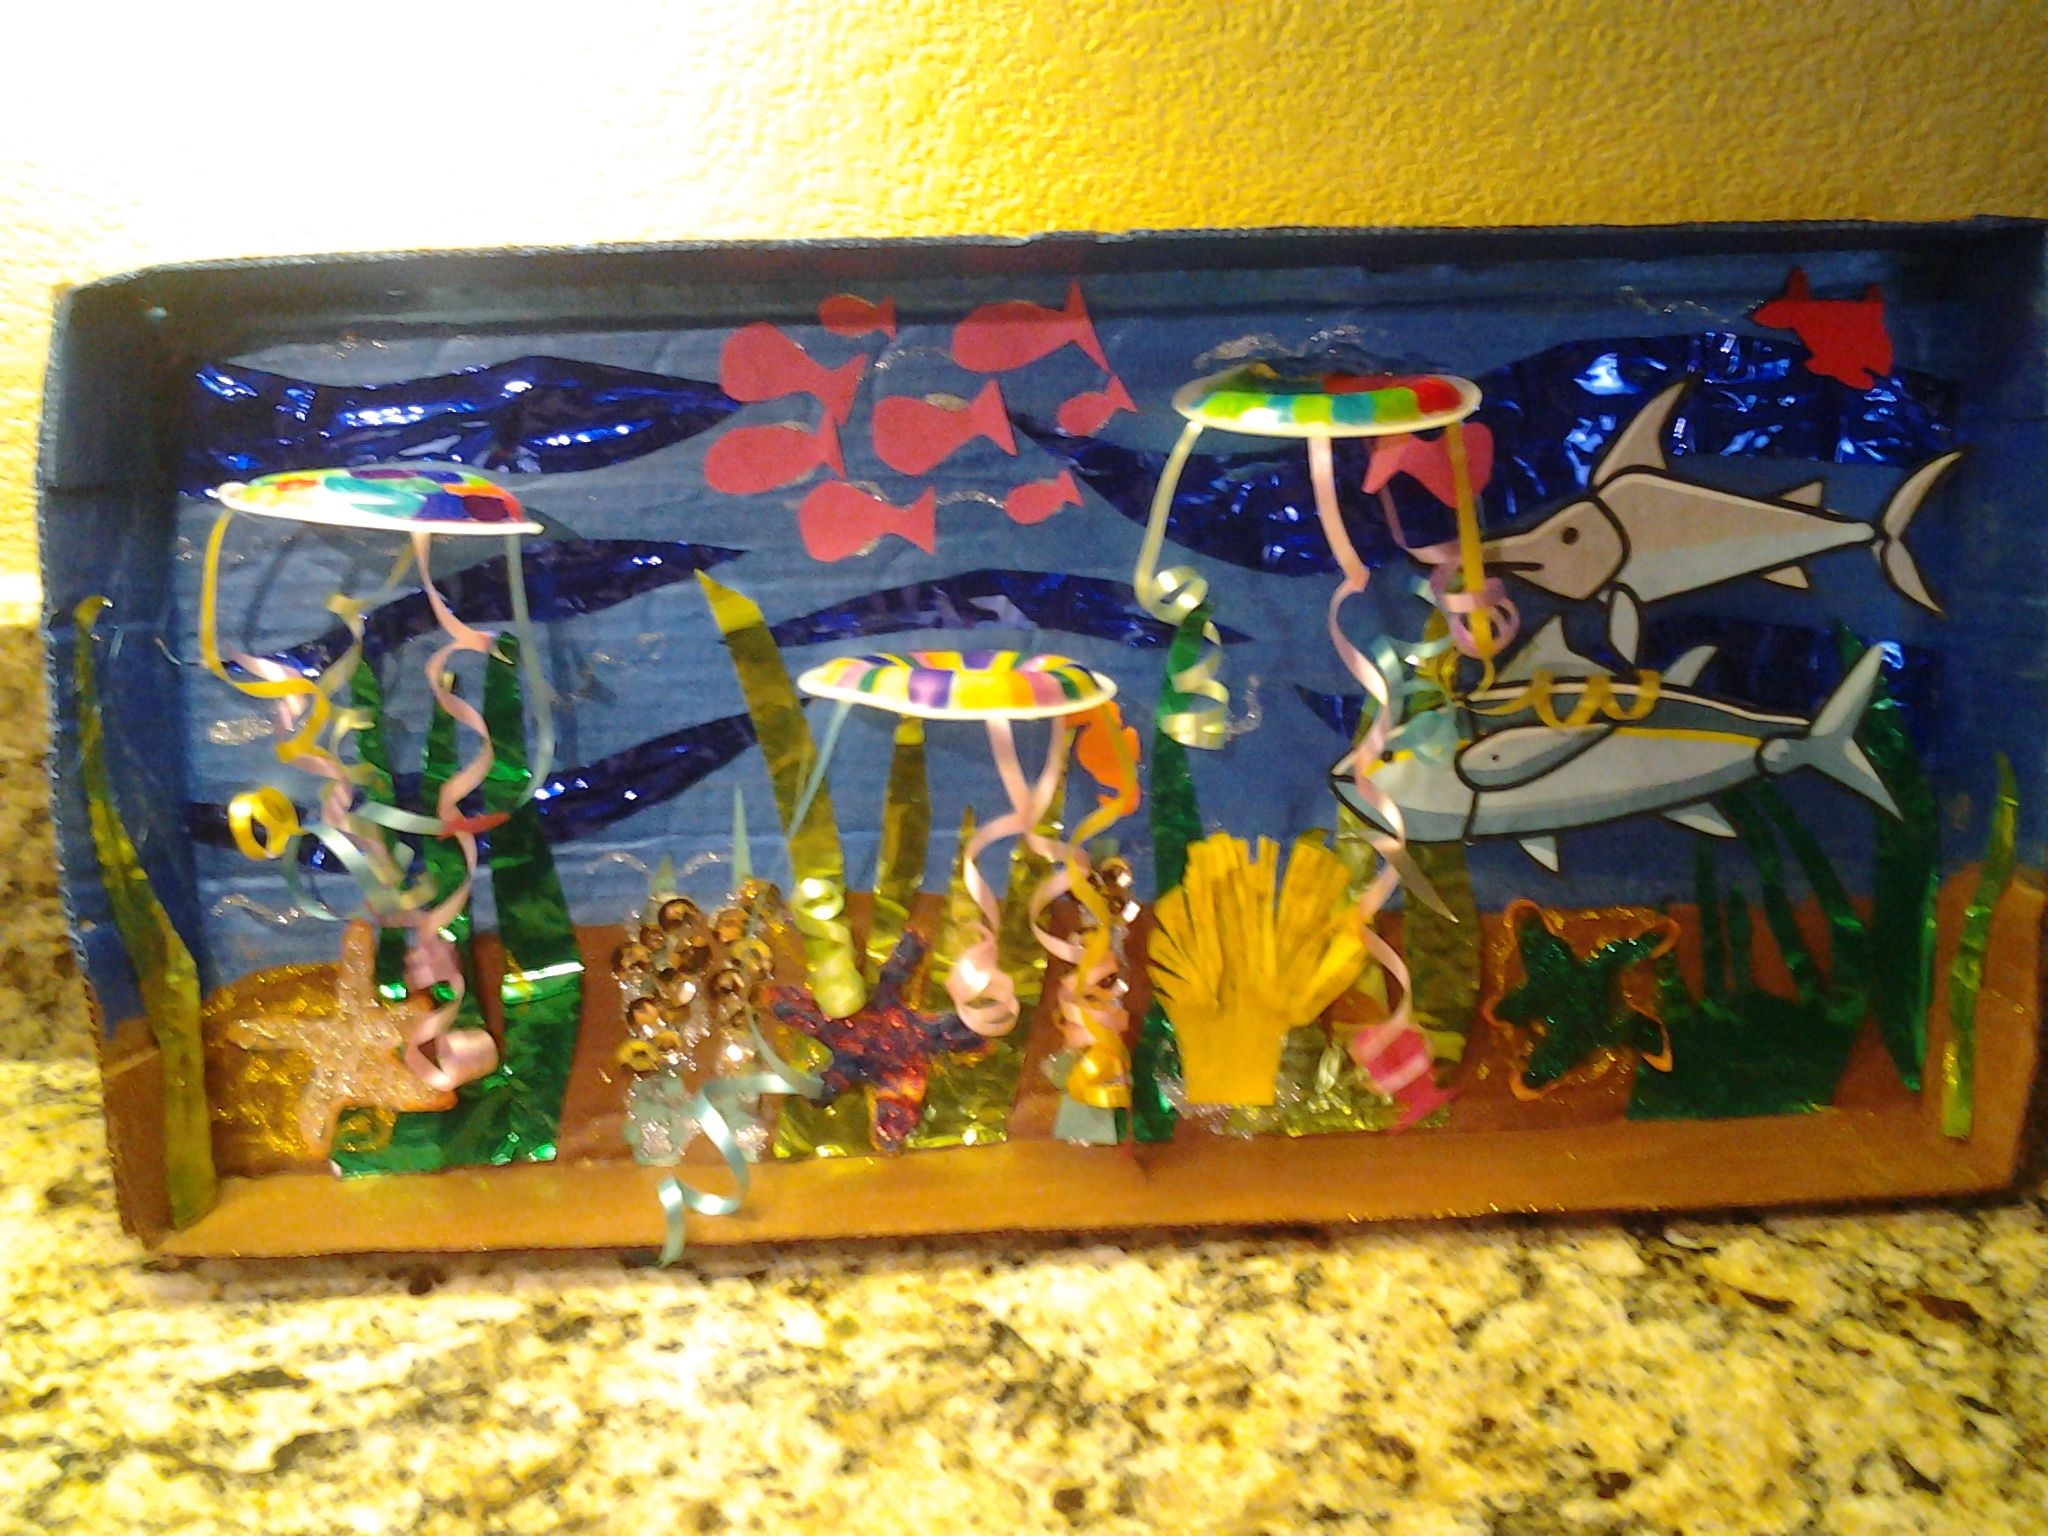 My niece needed to make a Under the Sea Jellyfish diorama for her